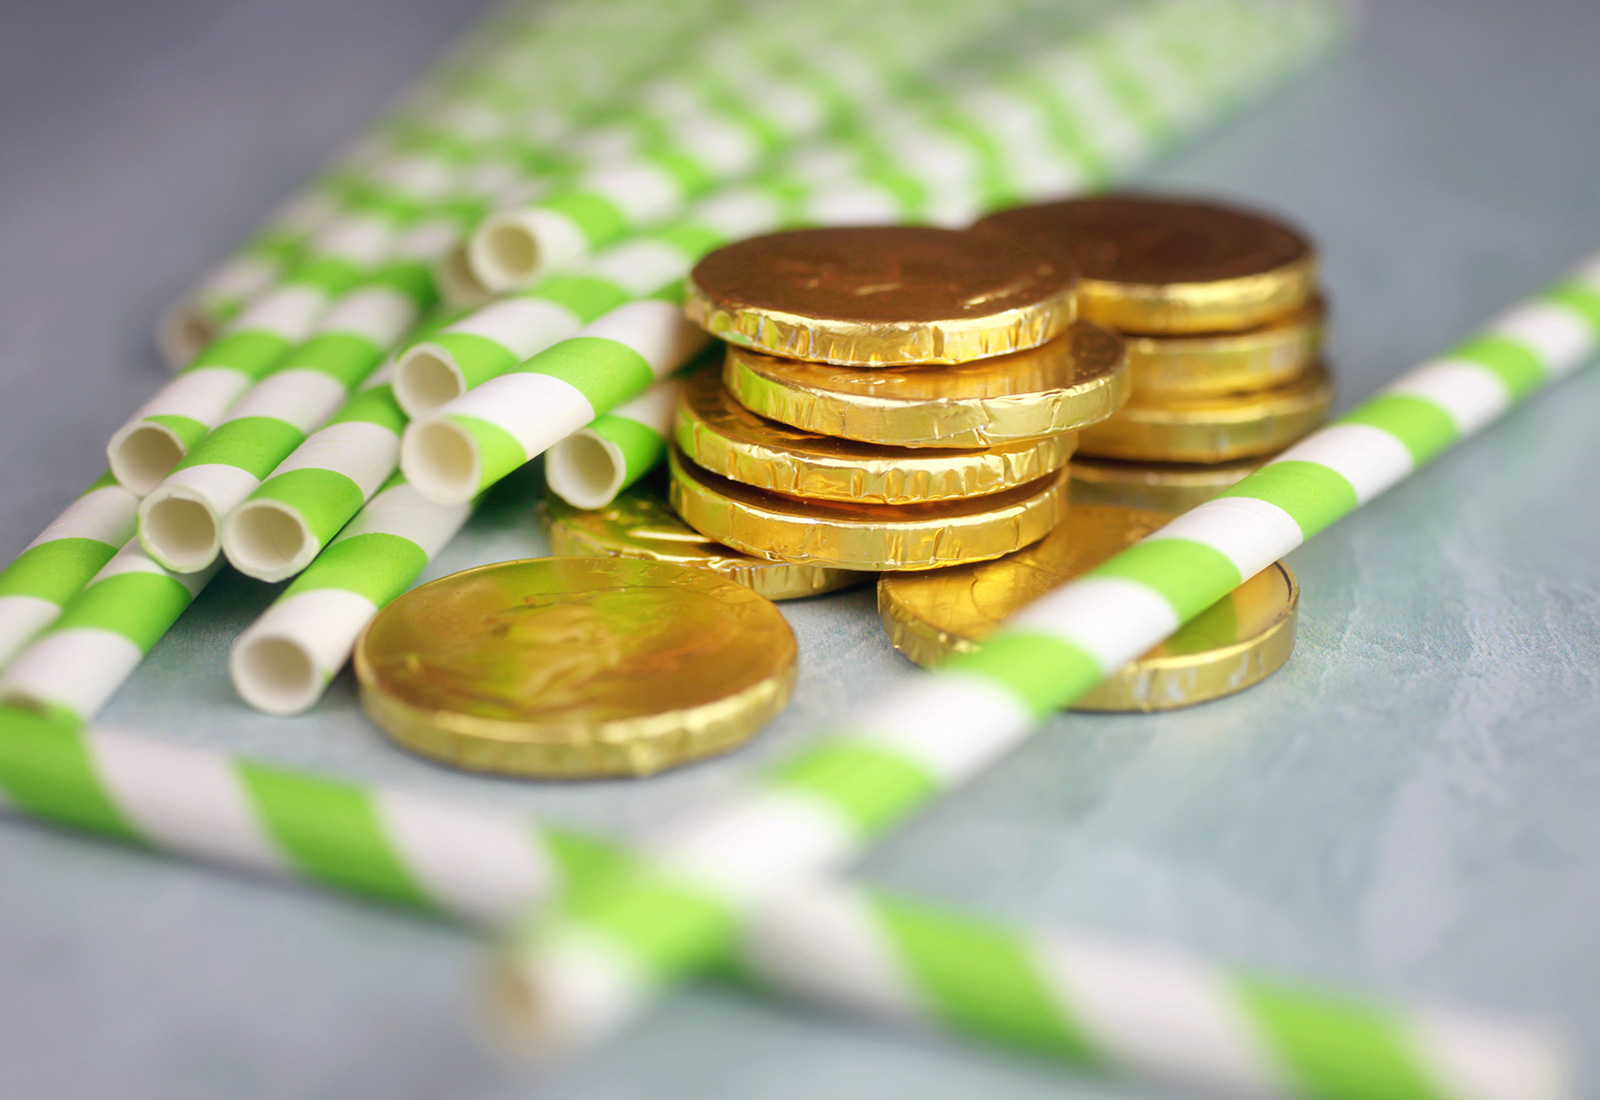 Green striped paper straws and chocolate coins